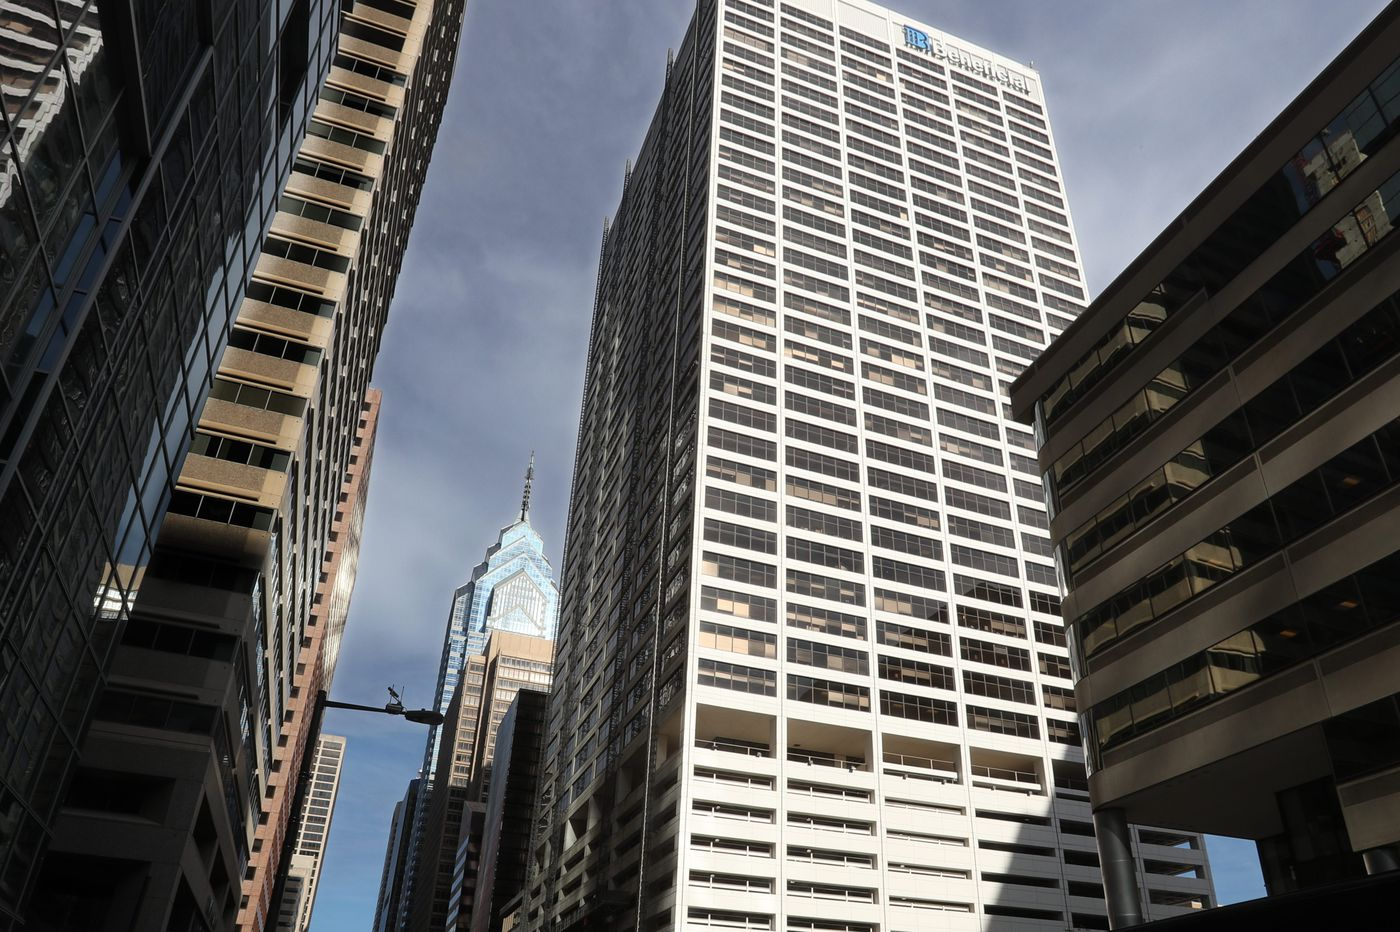 Shareholder complaint shaved $4 million+ from Beneficial directors' $17M payday